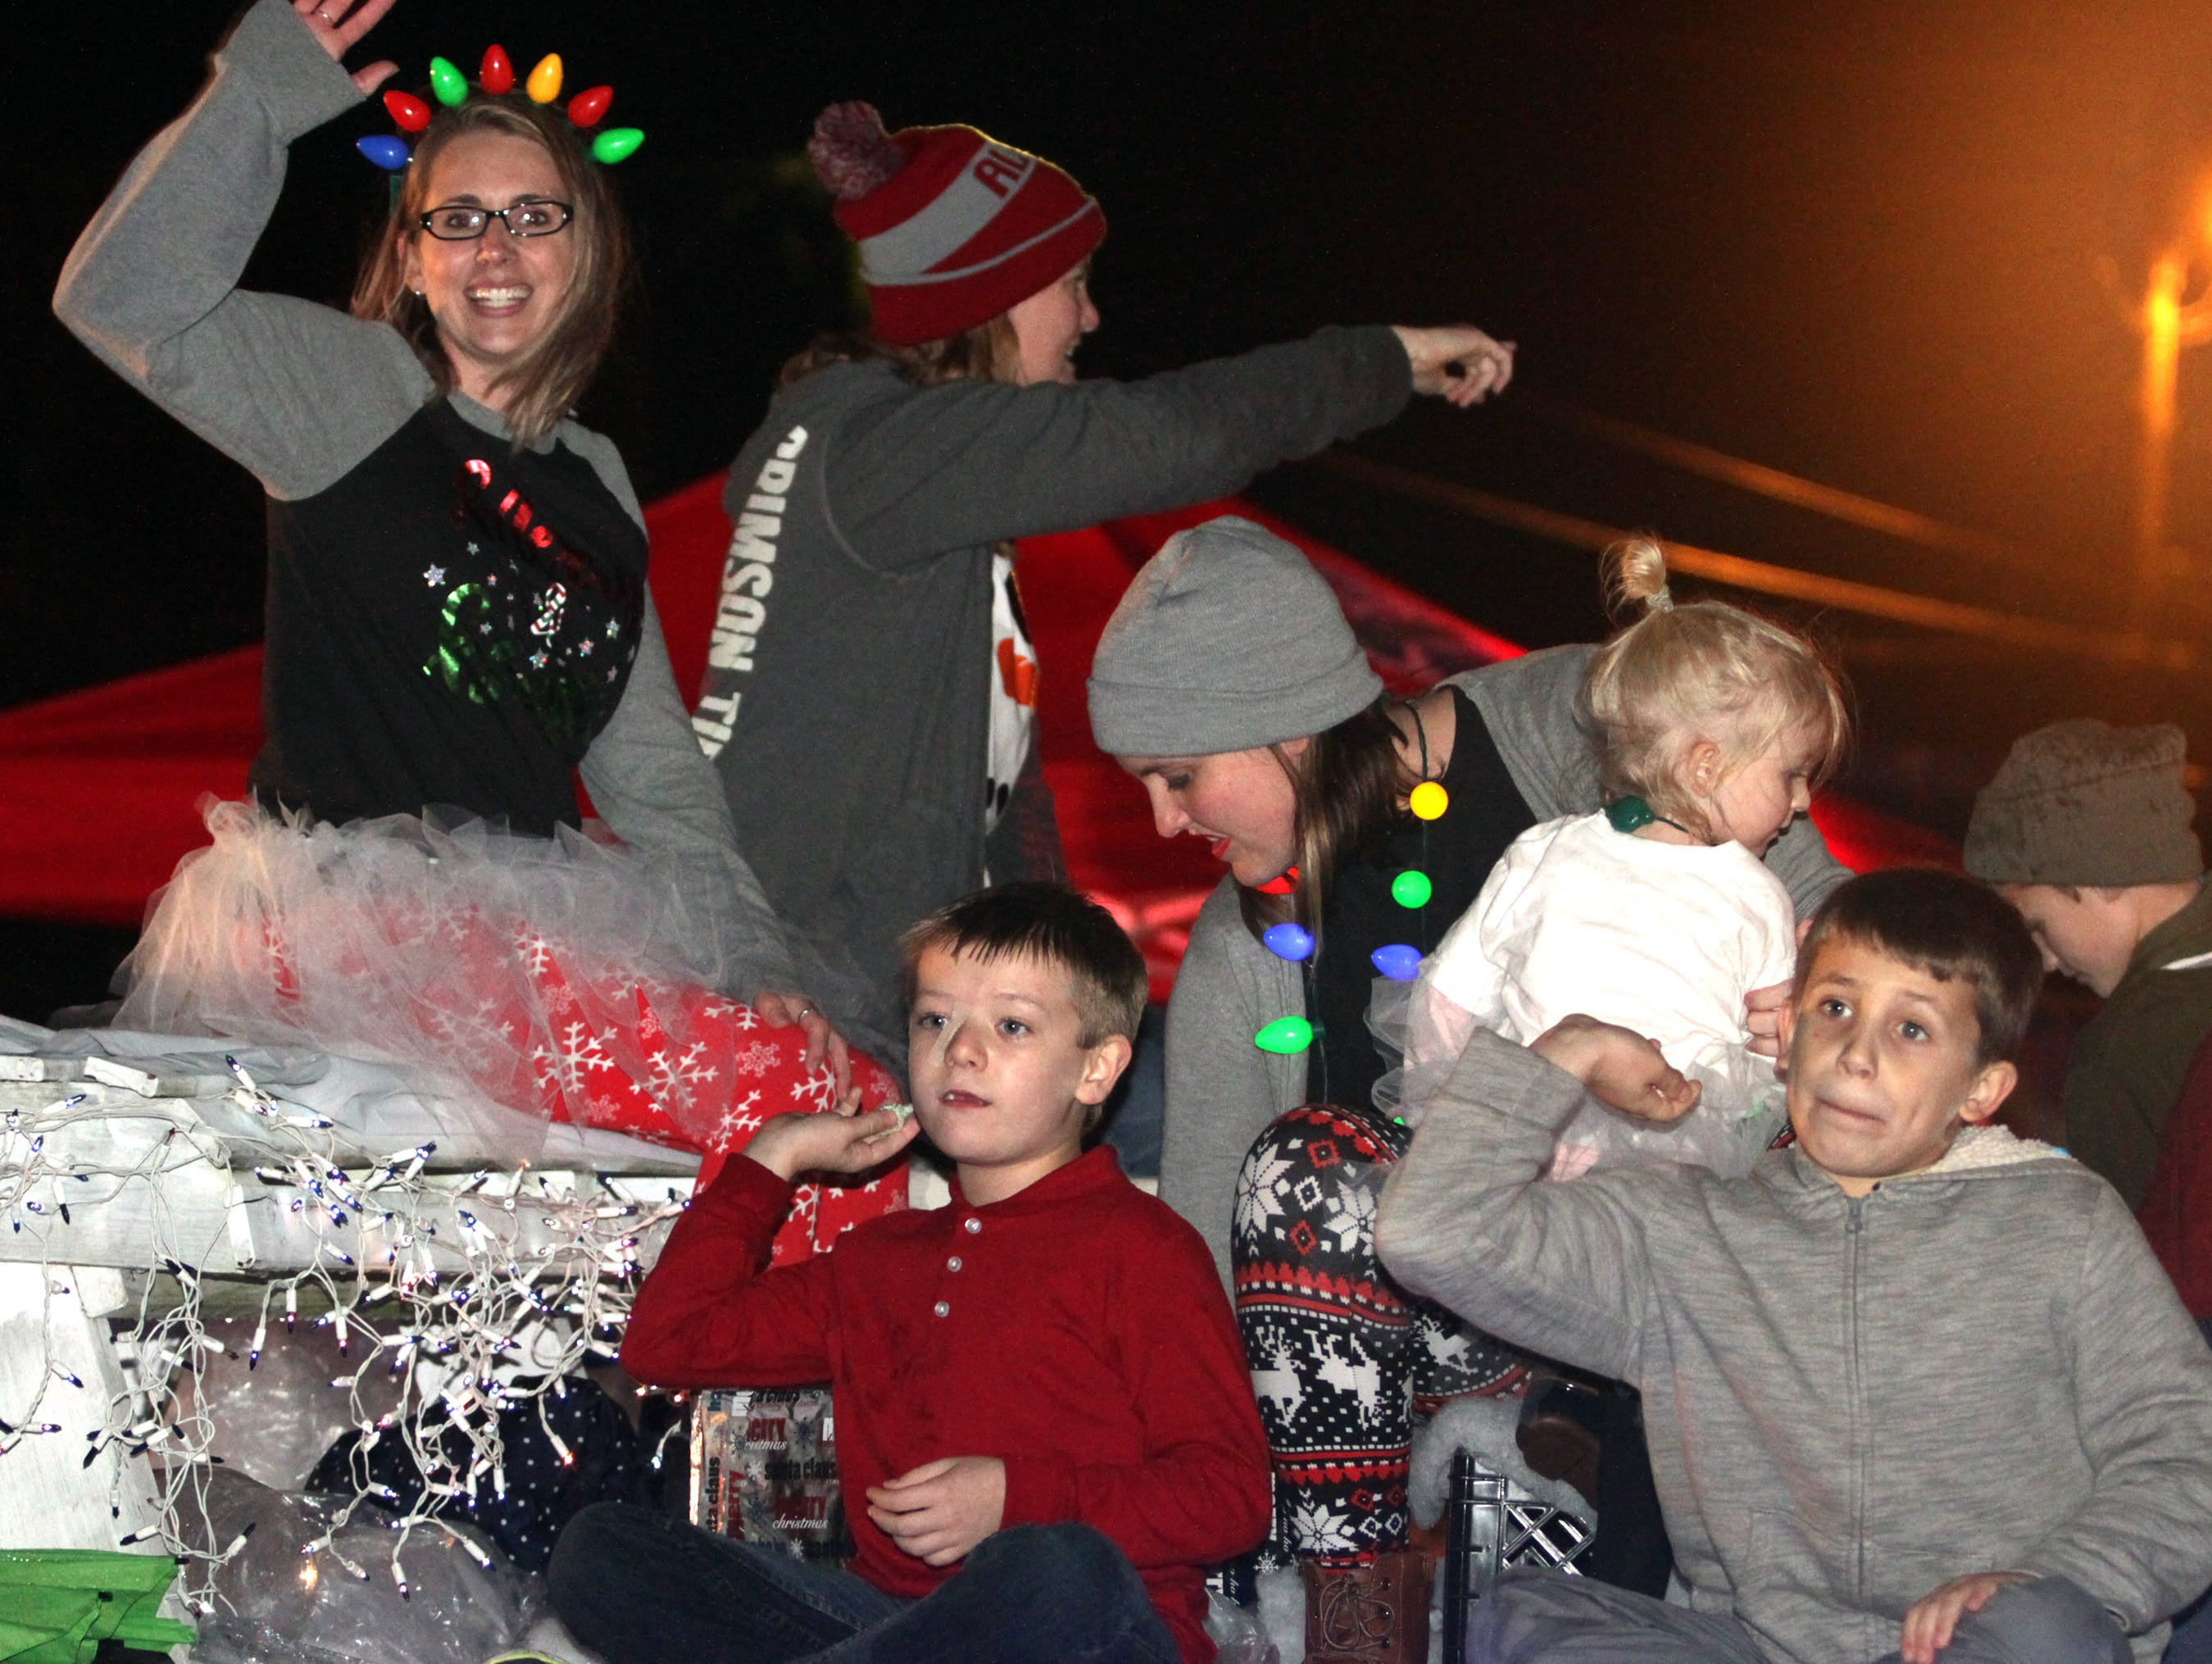 Children ride and throw candy from a float at the Ashland City xmas parade on Saturday, December 1, 2018.